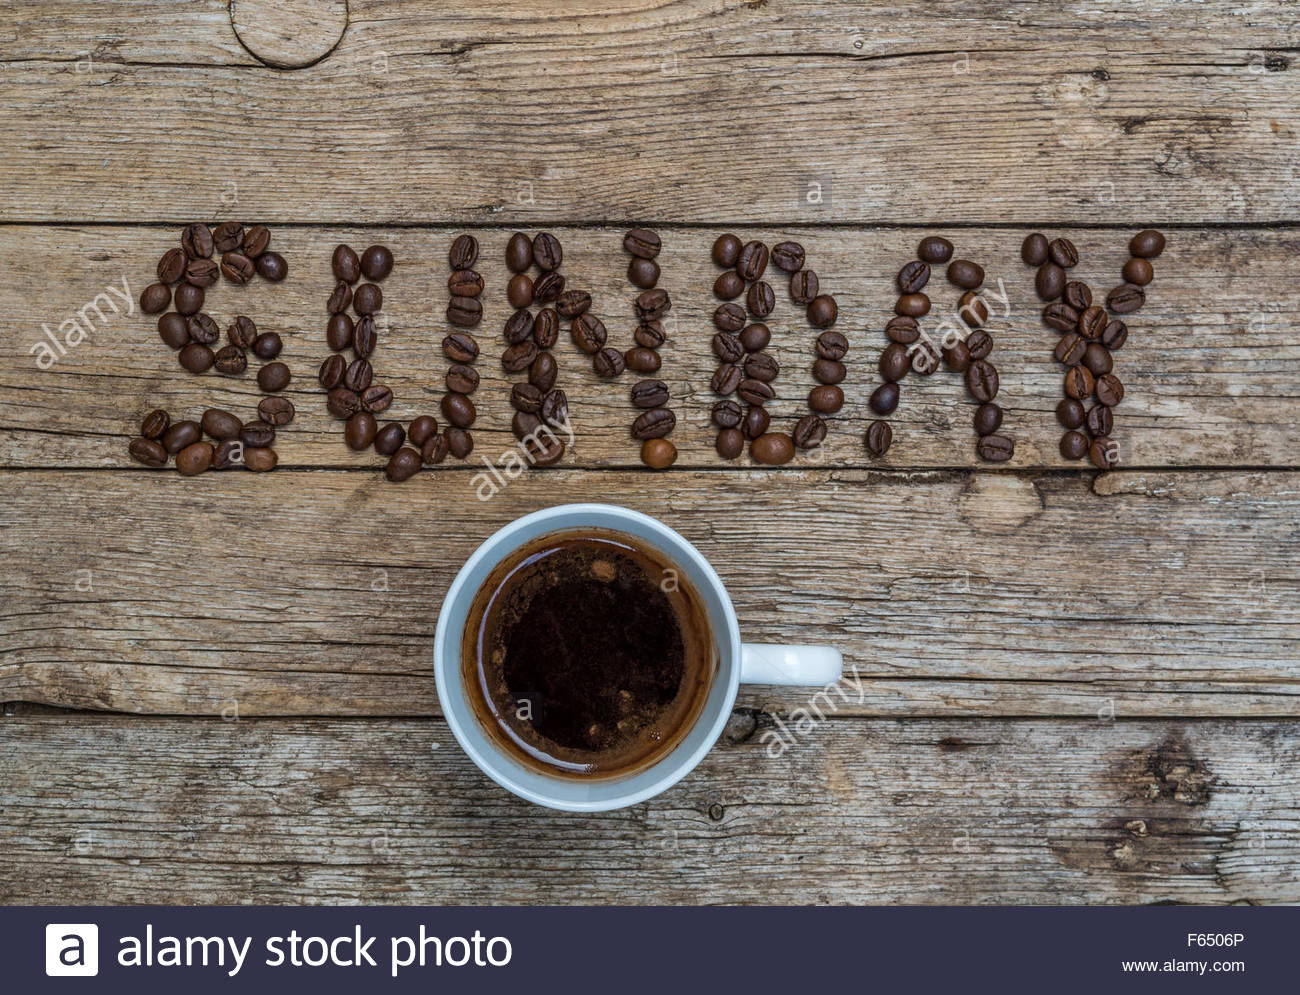 Cup of coffee on wooden background and SUNDAY coffee beans Stock ... #sundayCoffee